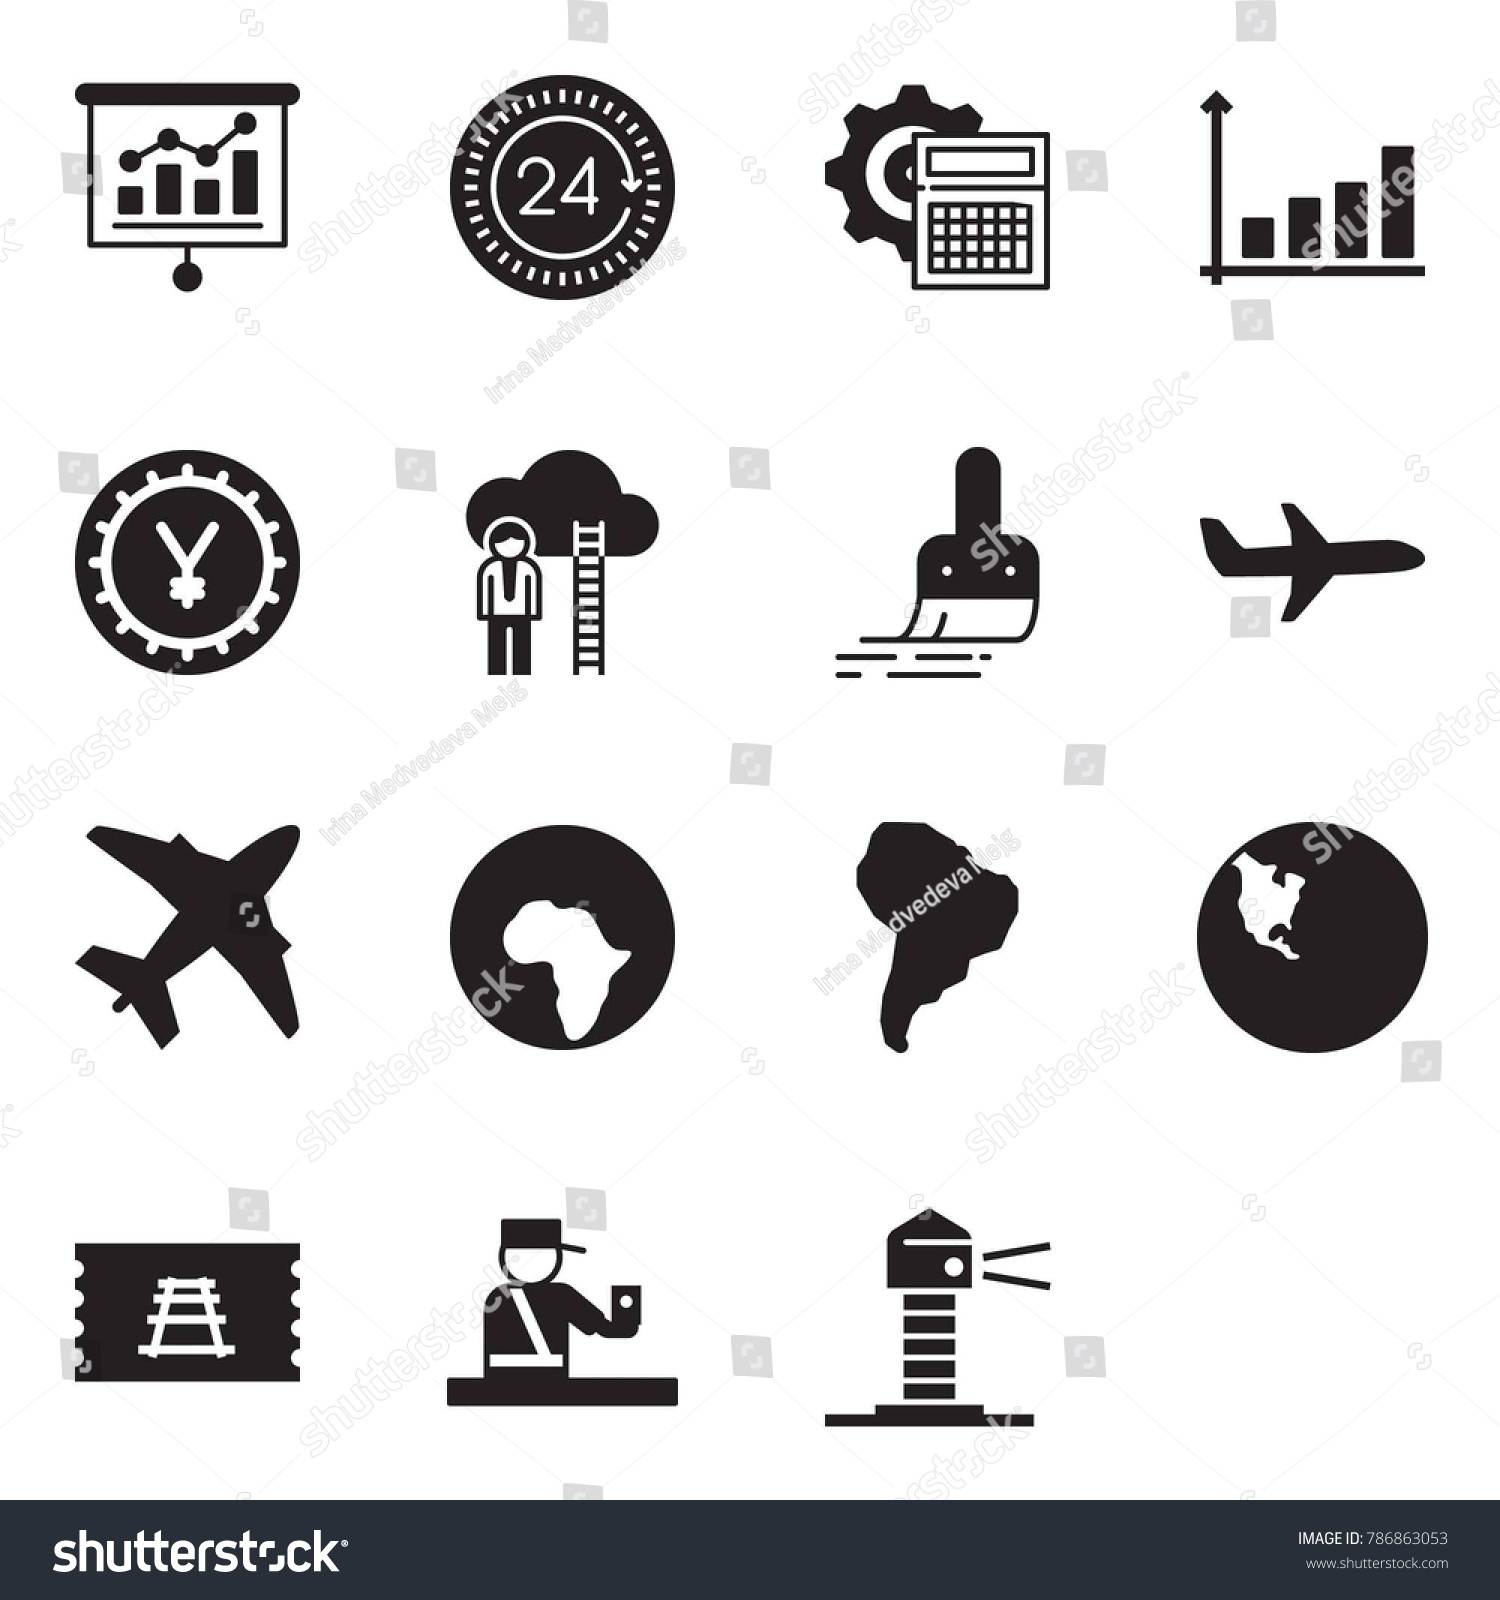 Solid black vector icon set presentation stock vector 786863053 solid black vector icon set presentation vector 24 hours calculator gear growth nvjuhfo Choice Image